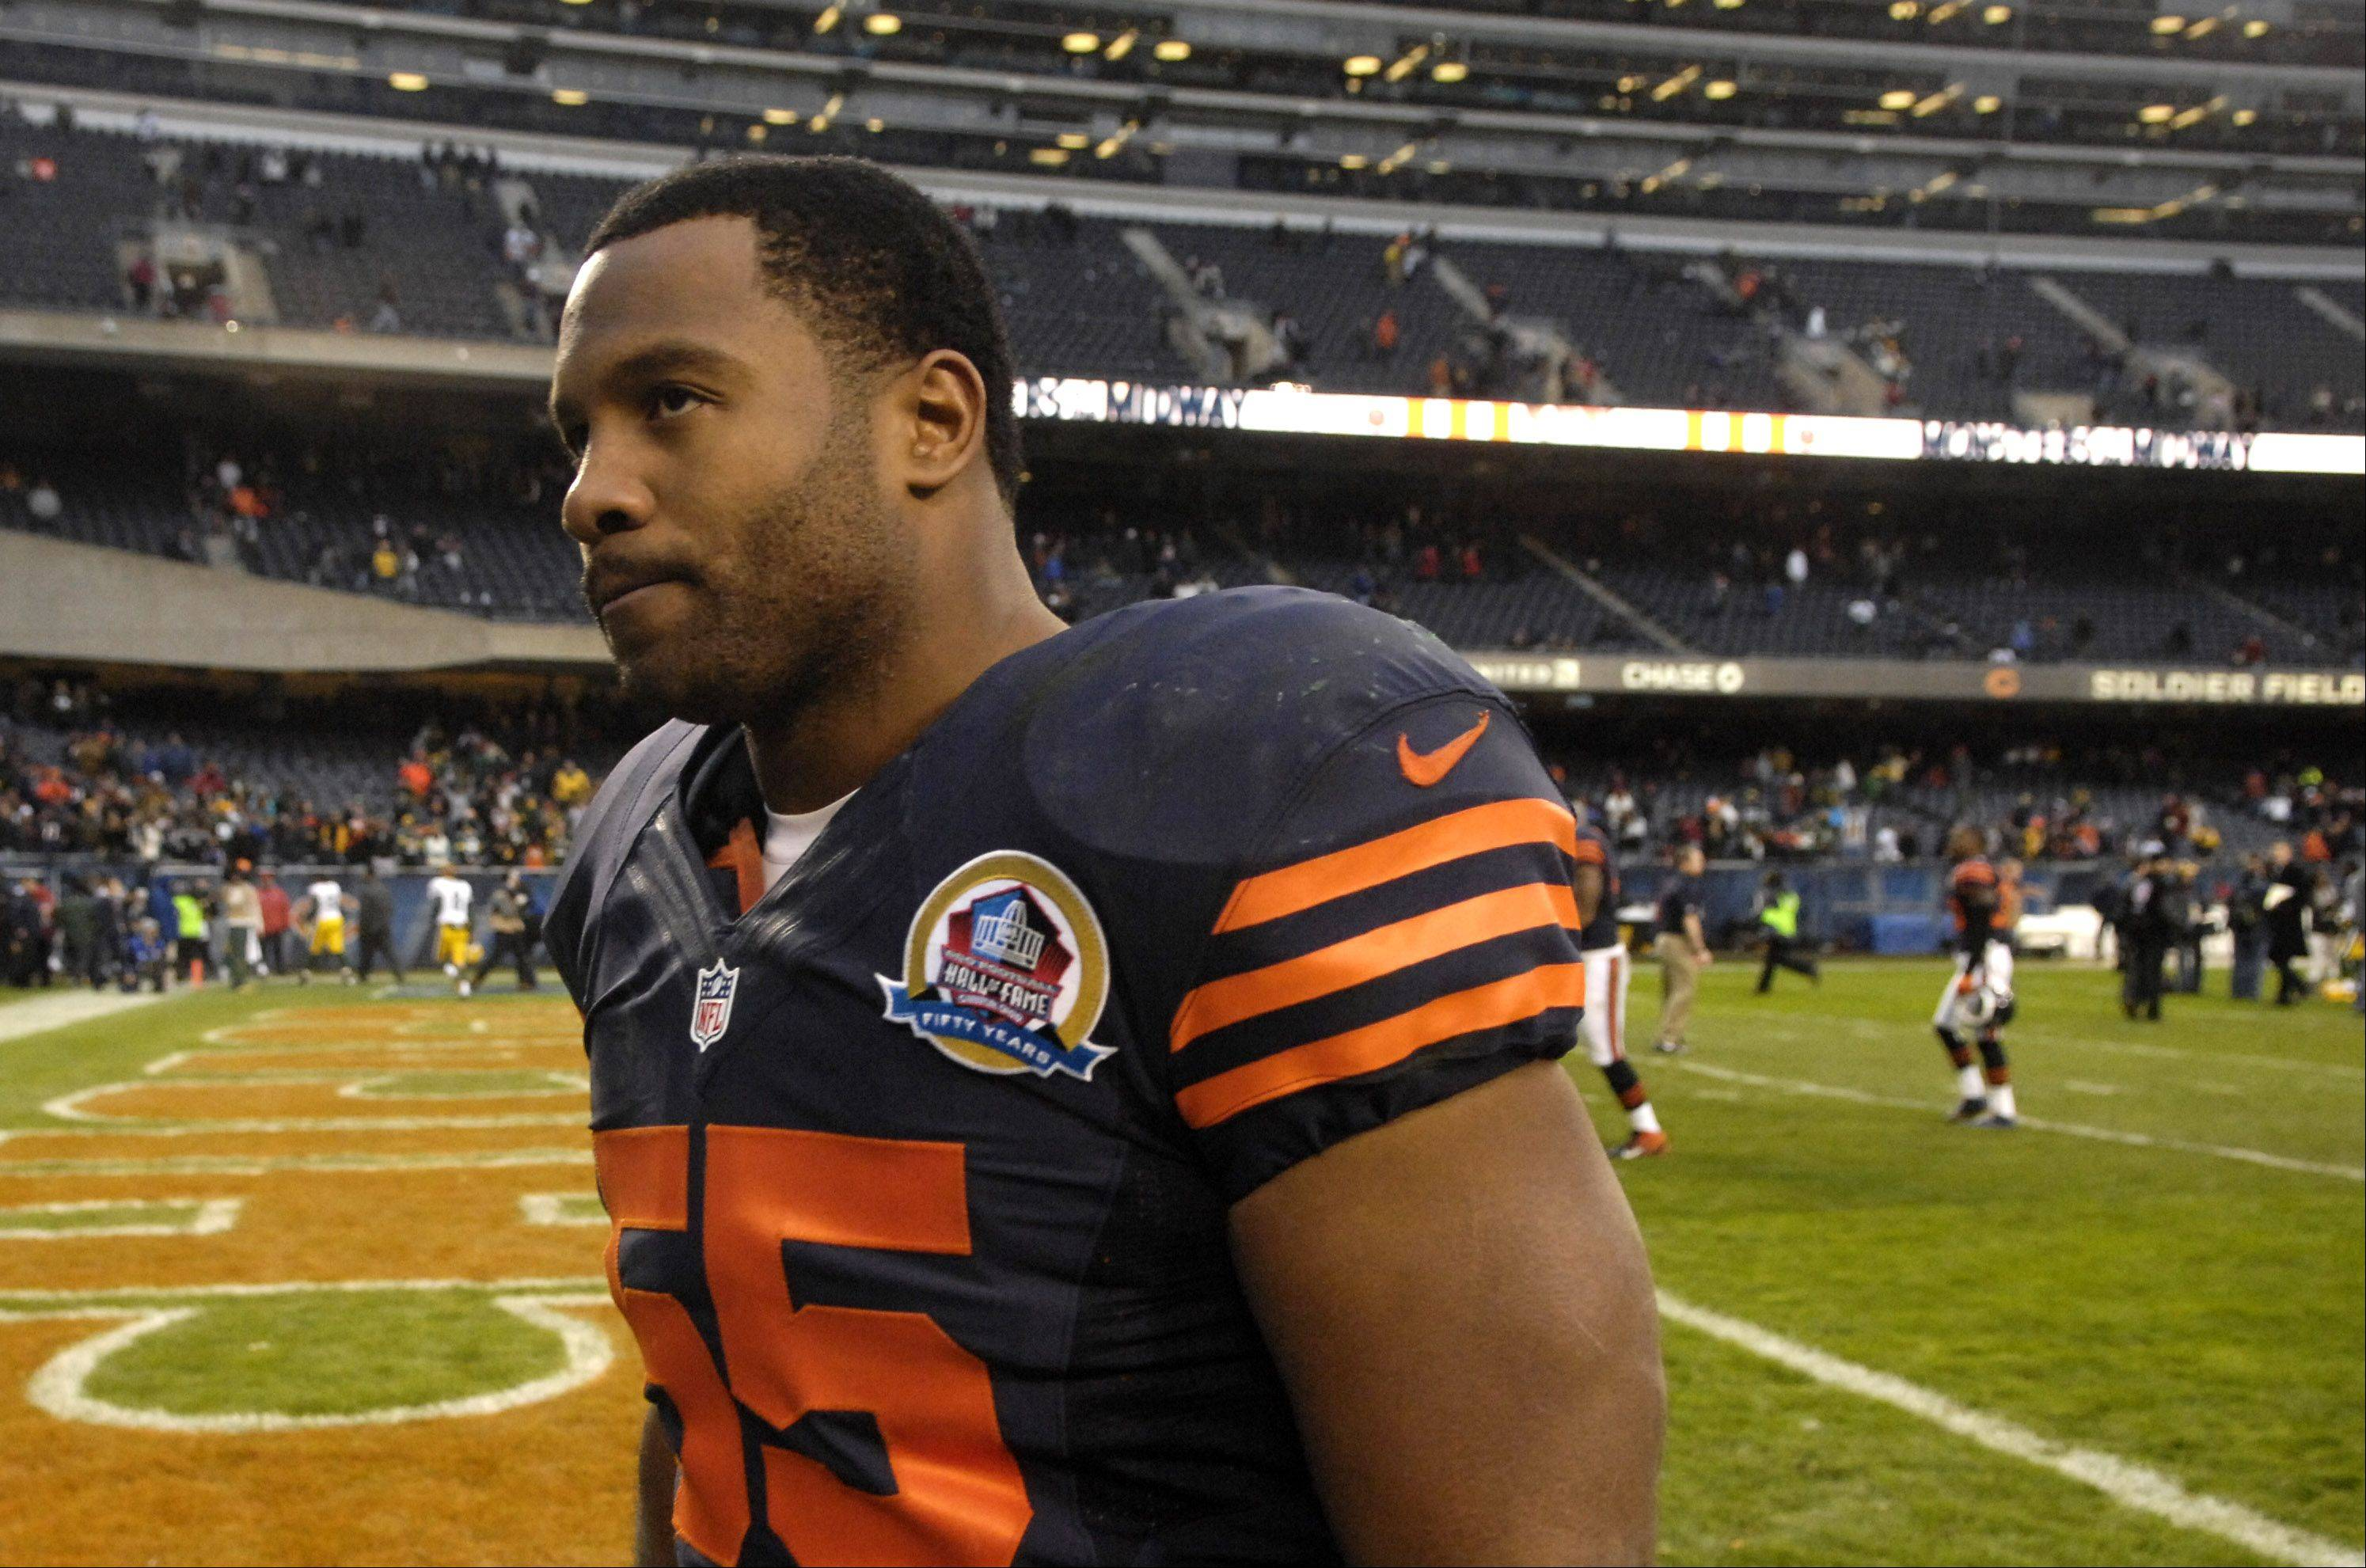 Chicago Bears outside linebacker Lance Briggs (55) walks off the field following Sunday's loss to the Packers at Soldier Field in Chicago.